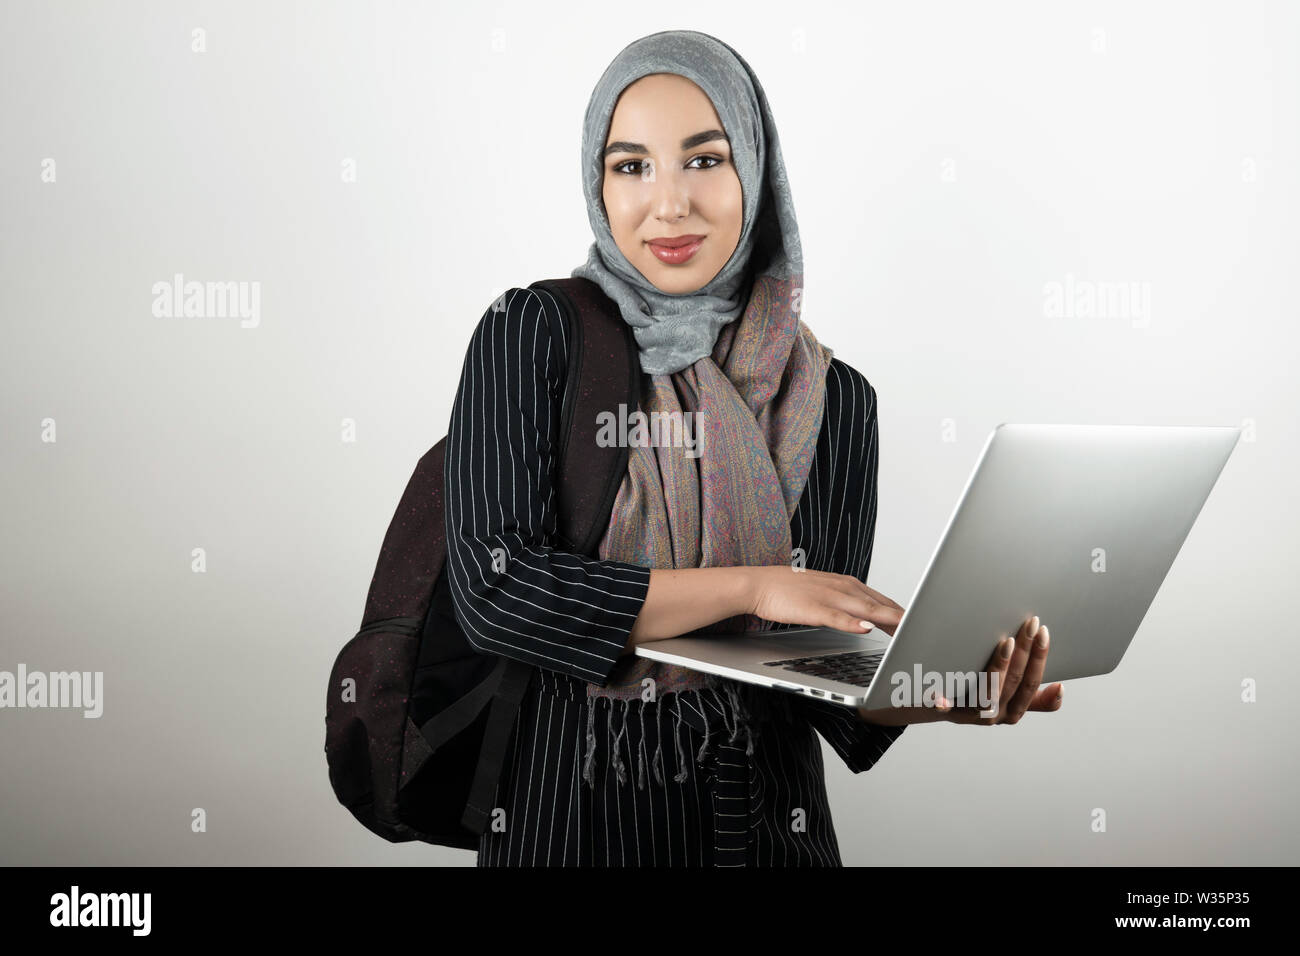 young attractive Muslim student with bagpack holding and tapping her laptop wearing turban hijab headscarf isolated white background - Stock Image